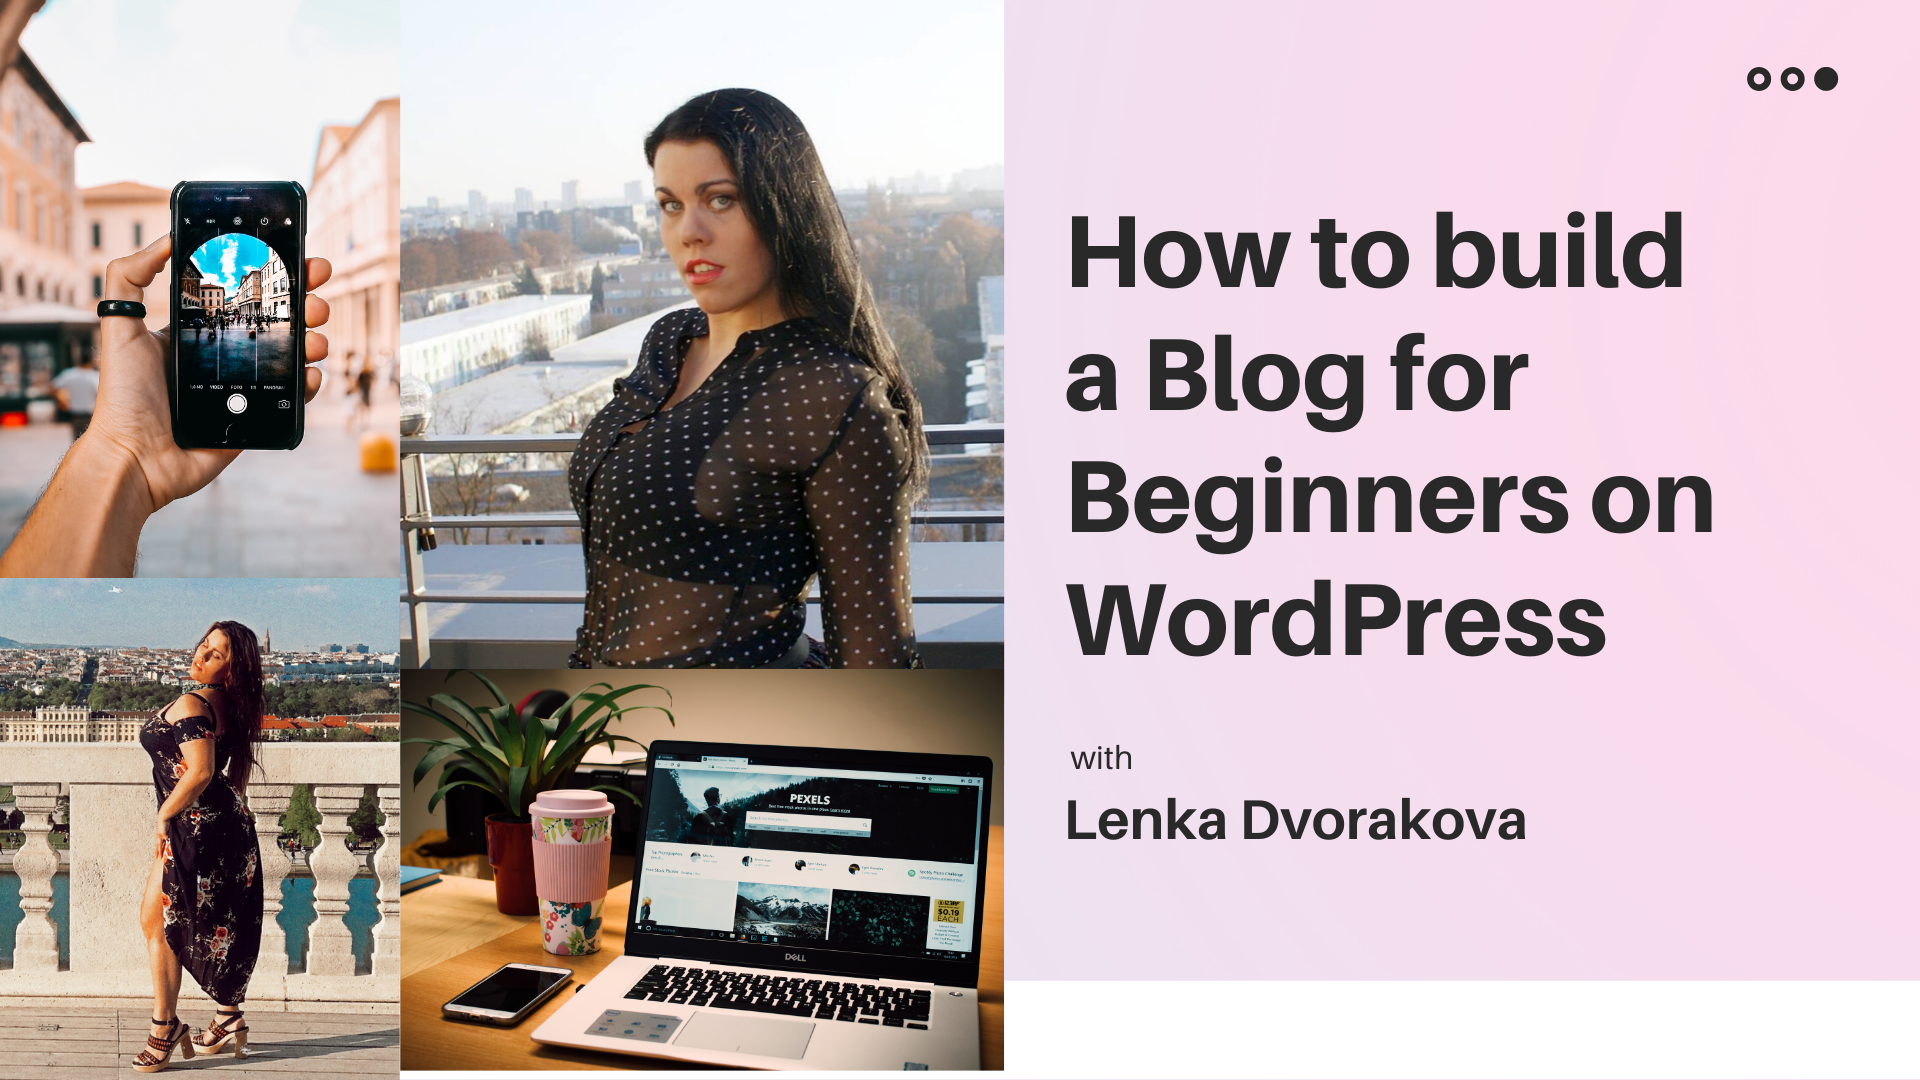 How to build a blog for begginers on WordPress